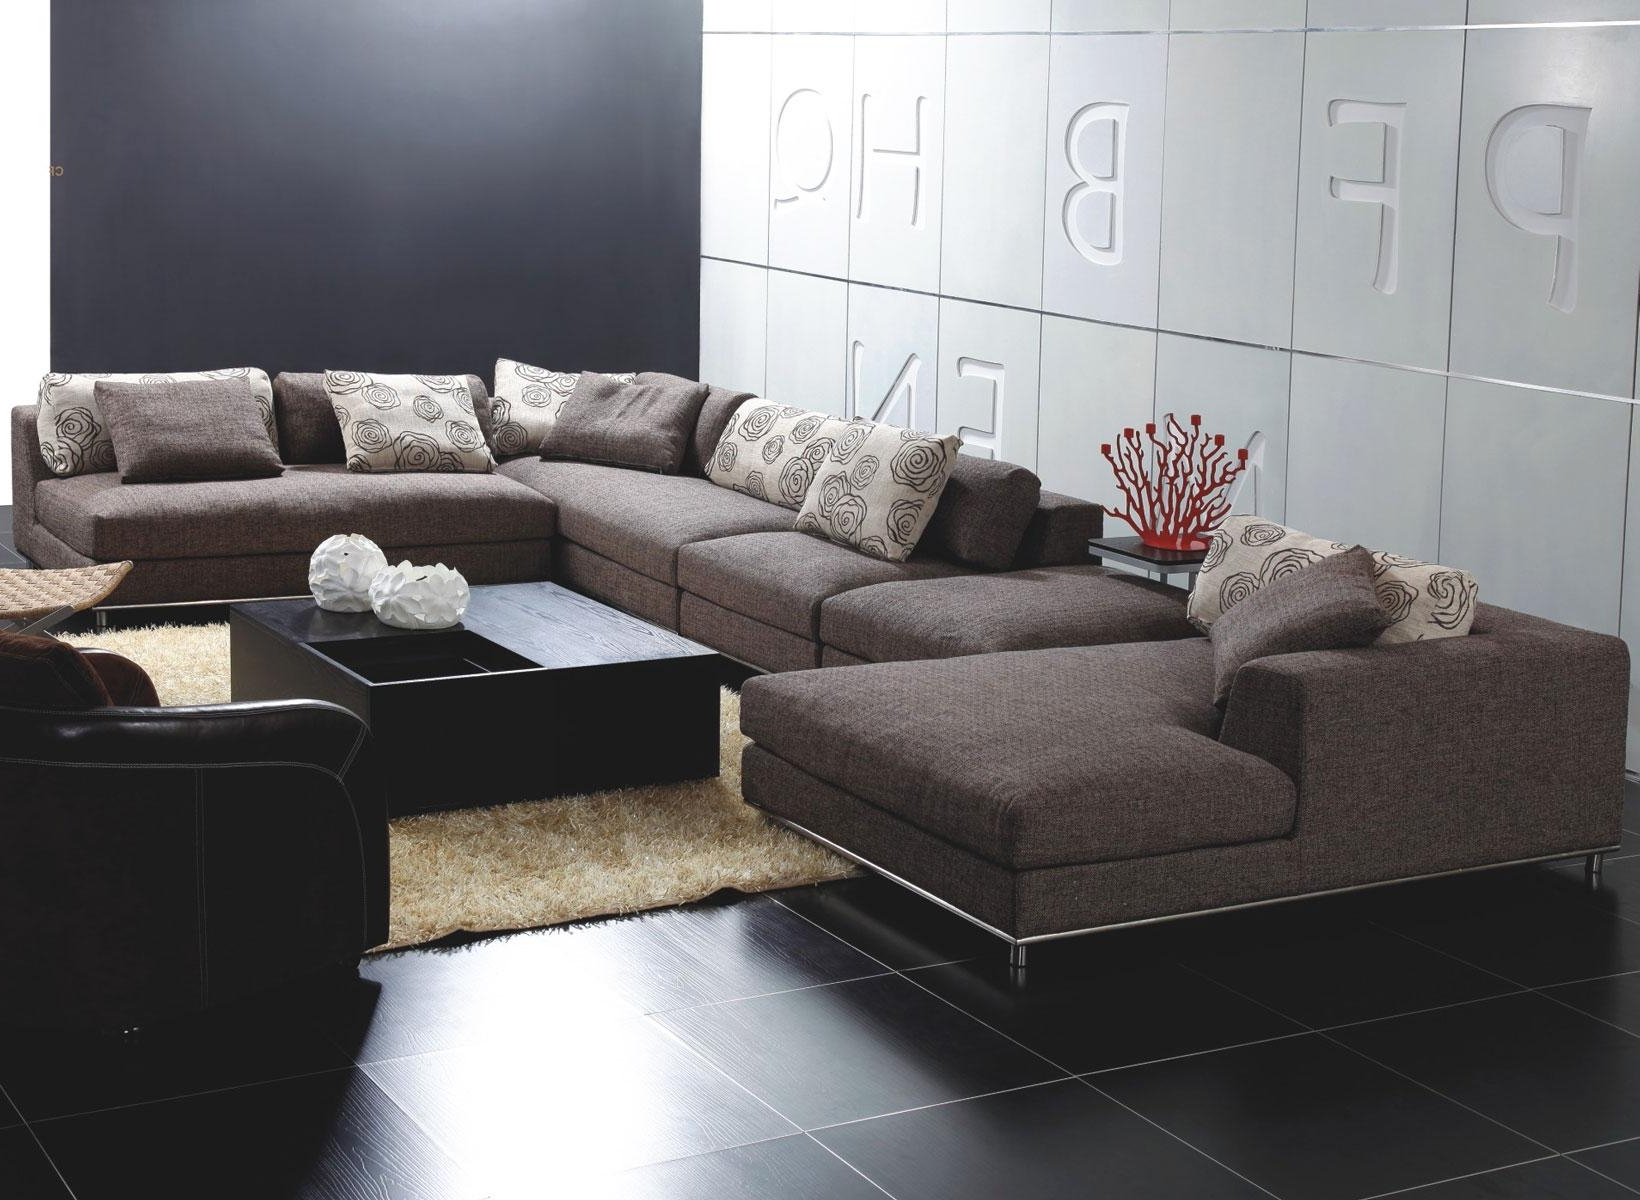 Cheap Used Sectional Sofas – Hotelsbacau Within Current Used Sectional Sofas (View 1 of 15)